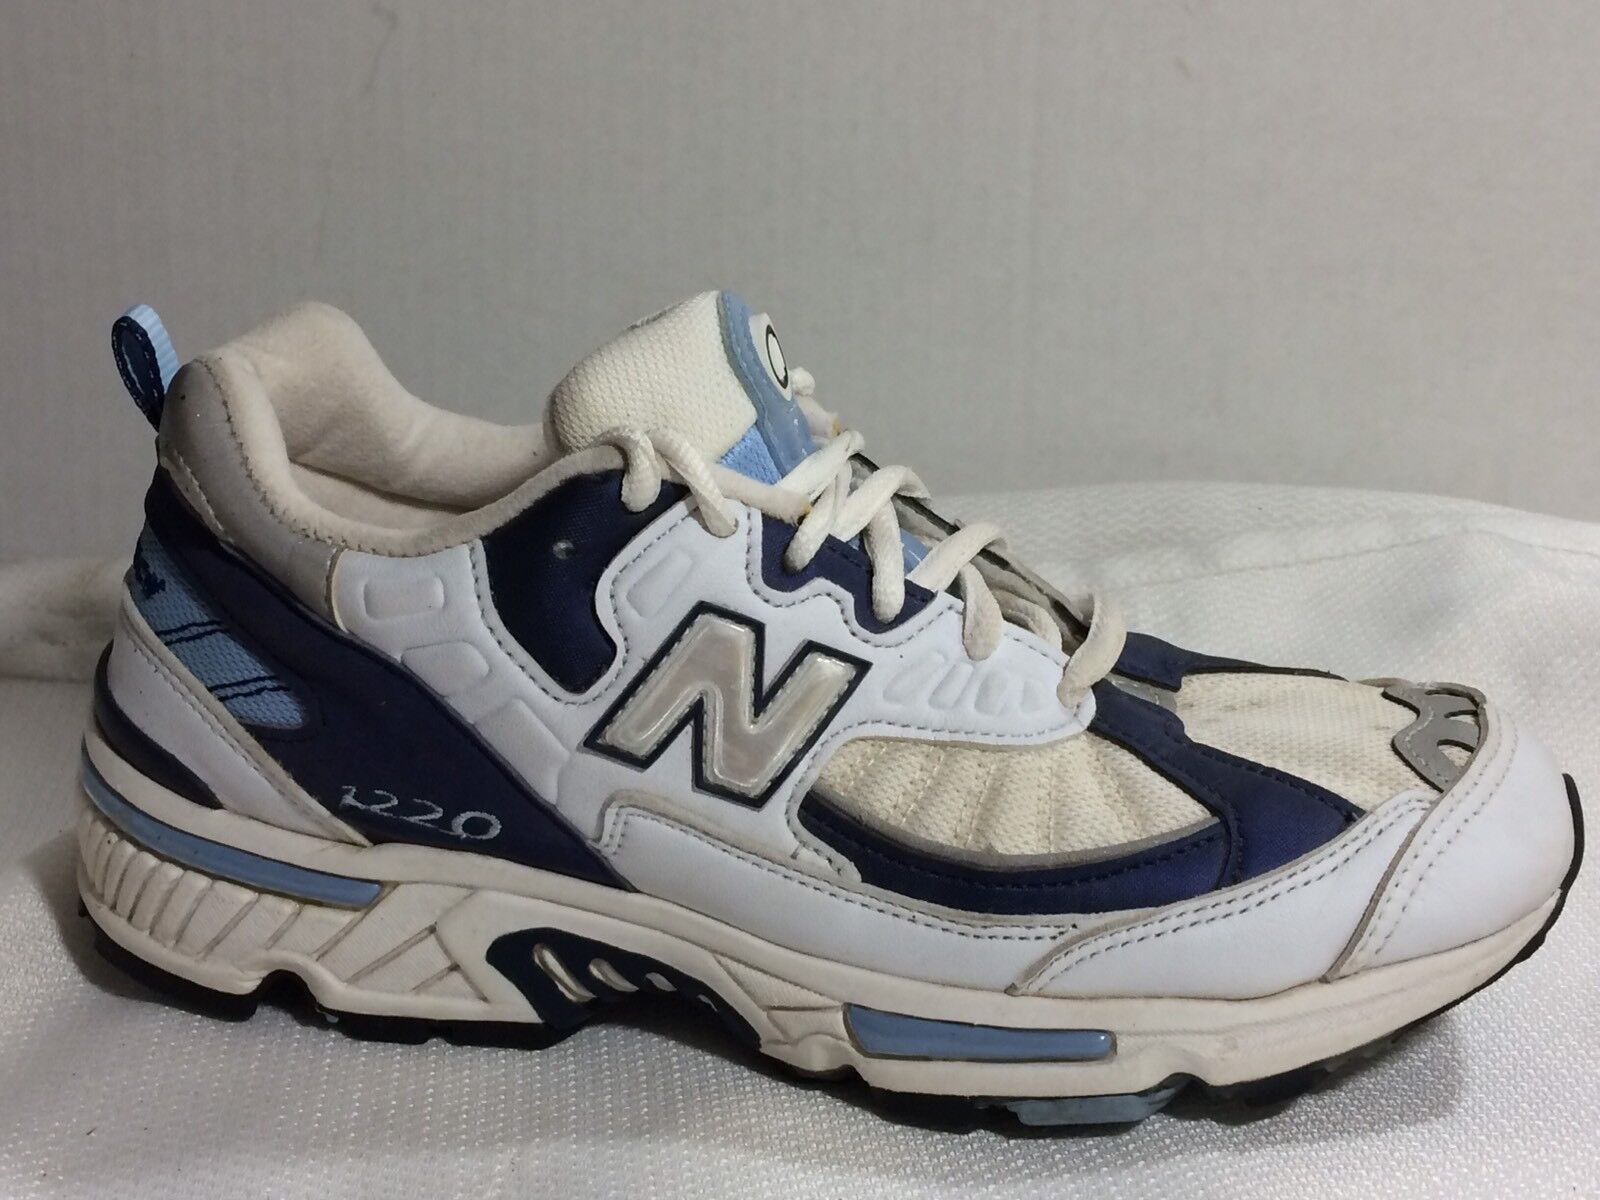 New Balance 1220 Wmns 6.5 Running AA NARROW Running 6.5 Sneaker White Navy Blue Shoe Trainer 9779ca